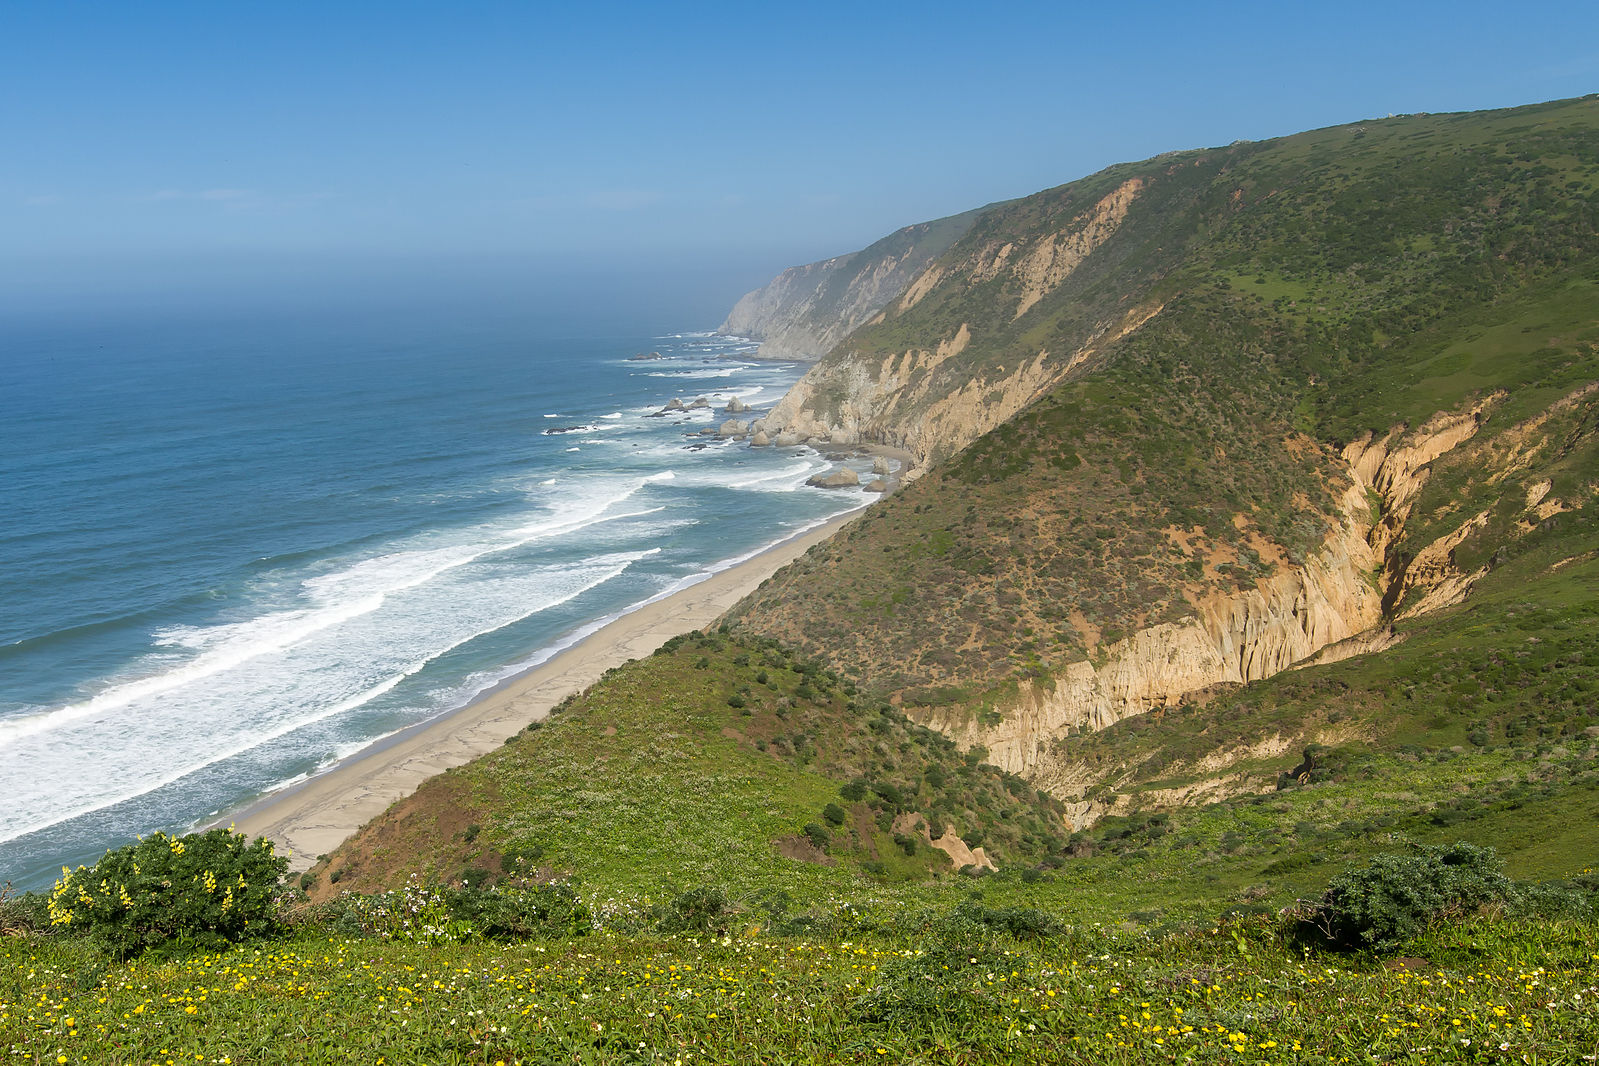 Protecting Point Reyes National Seashore Through Media Coverage and Grassroots Action